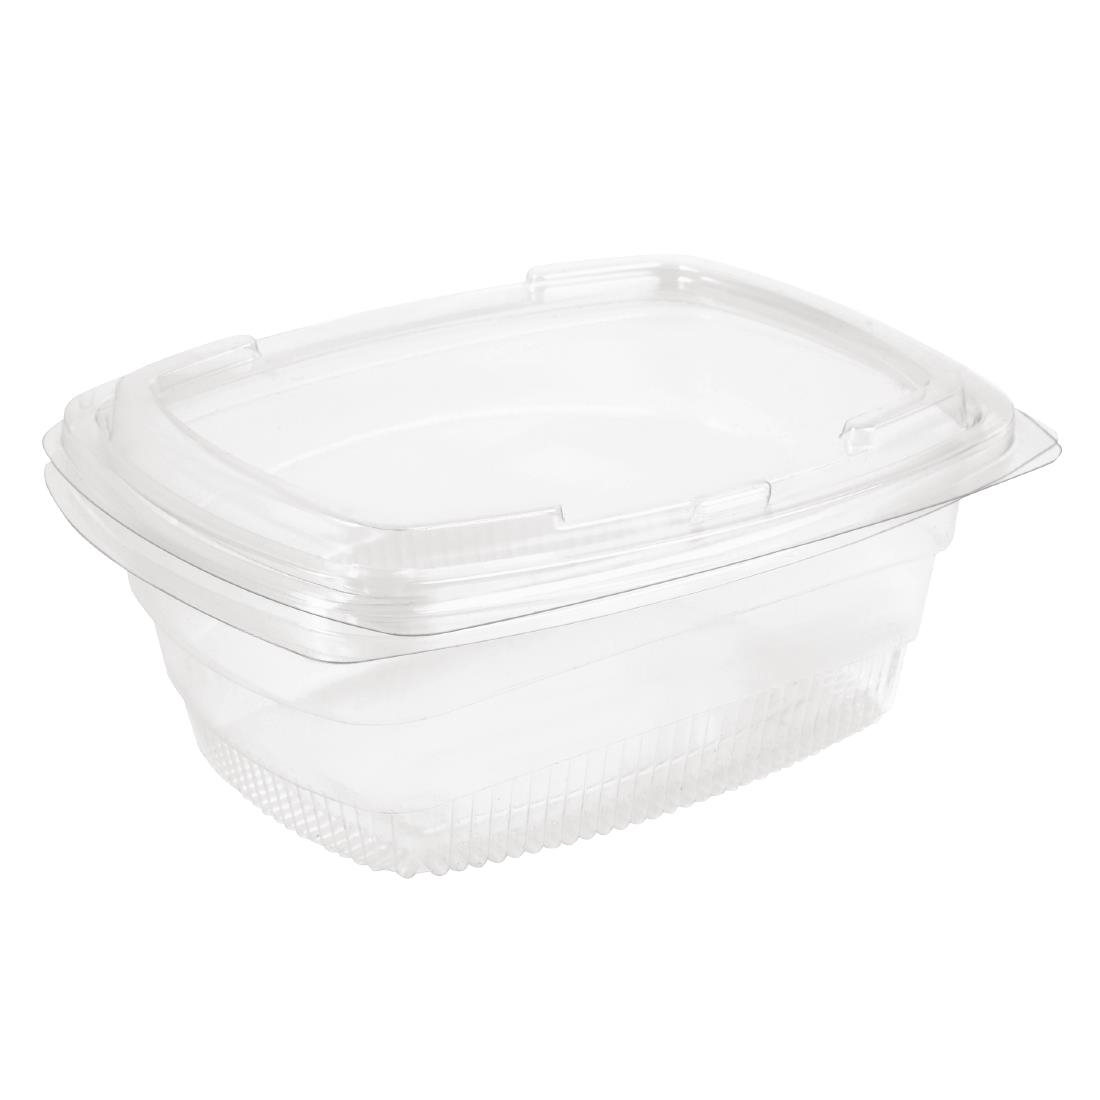 Image of Faerch Fresco Recyclable Deli Containers With Lid 1000ml / 35oz (Pack of 300) Pack of 300